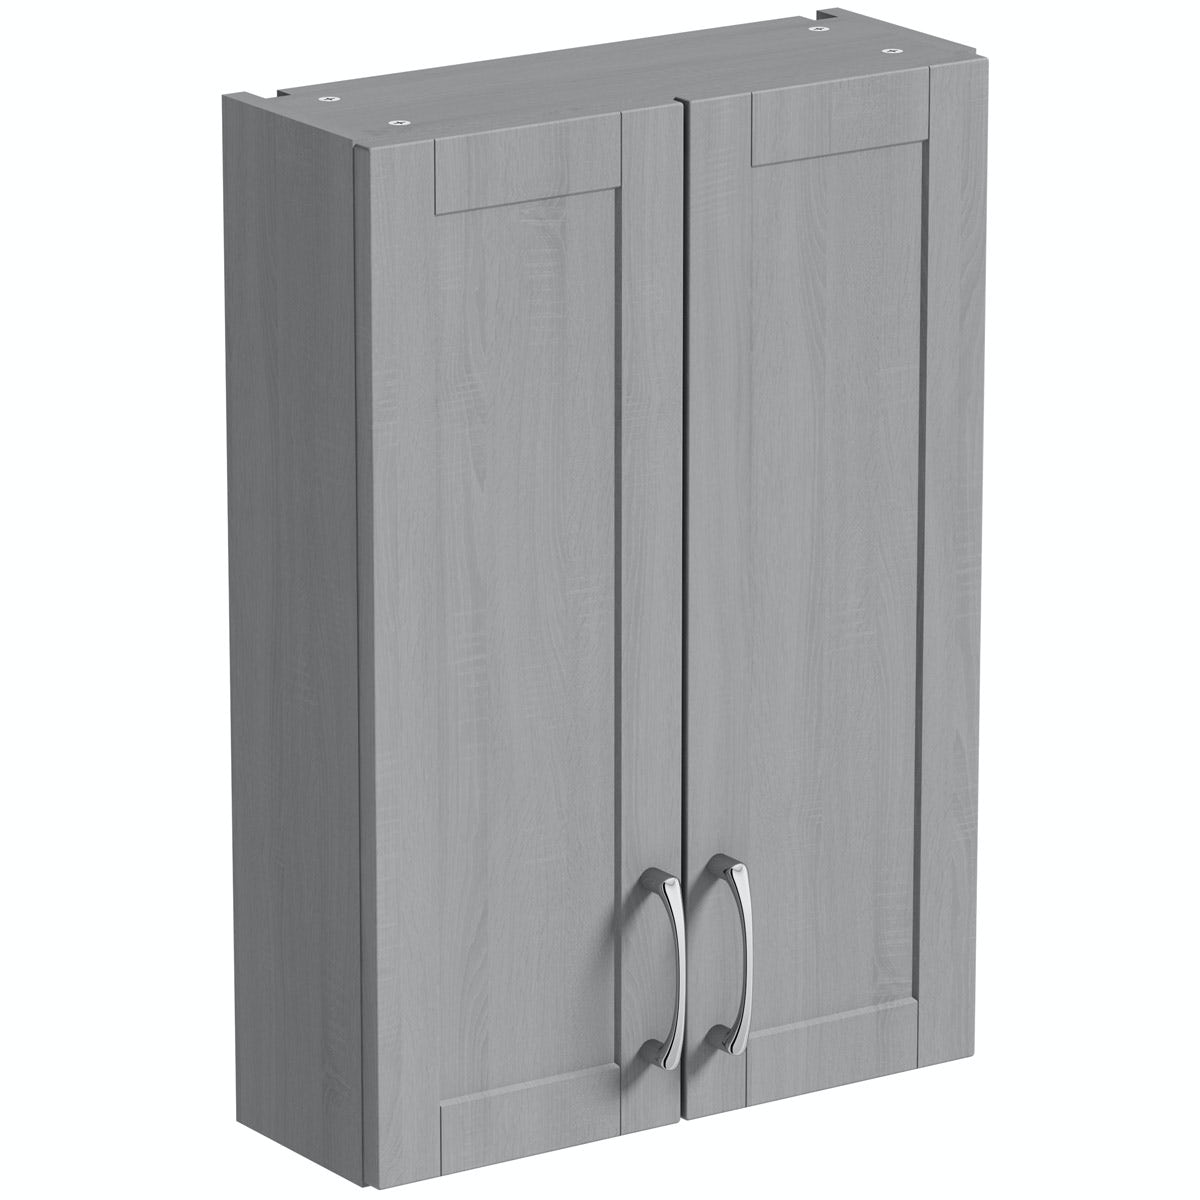 The Bath Co. Newbury dusk grey wall cabinet 500mm